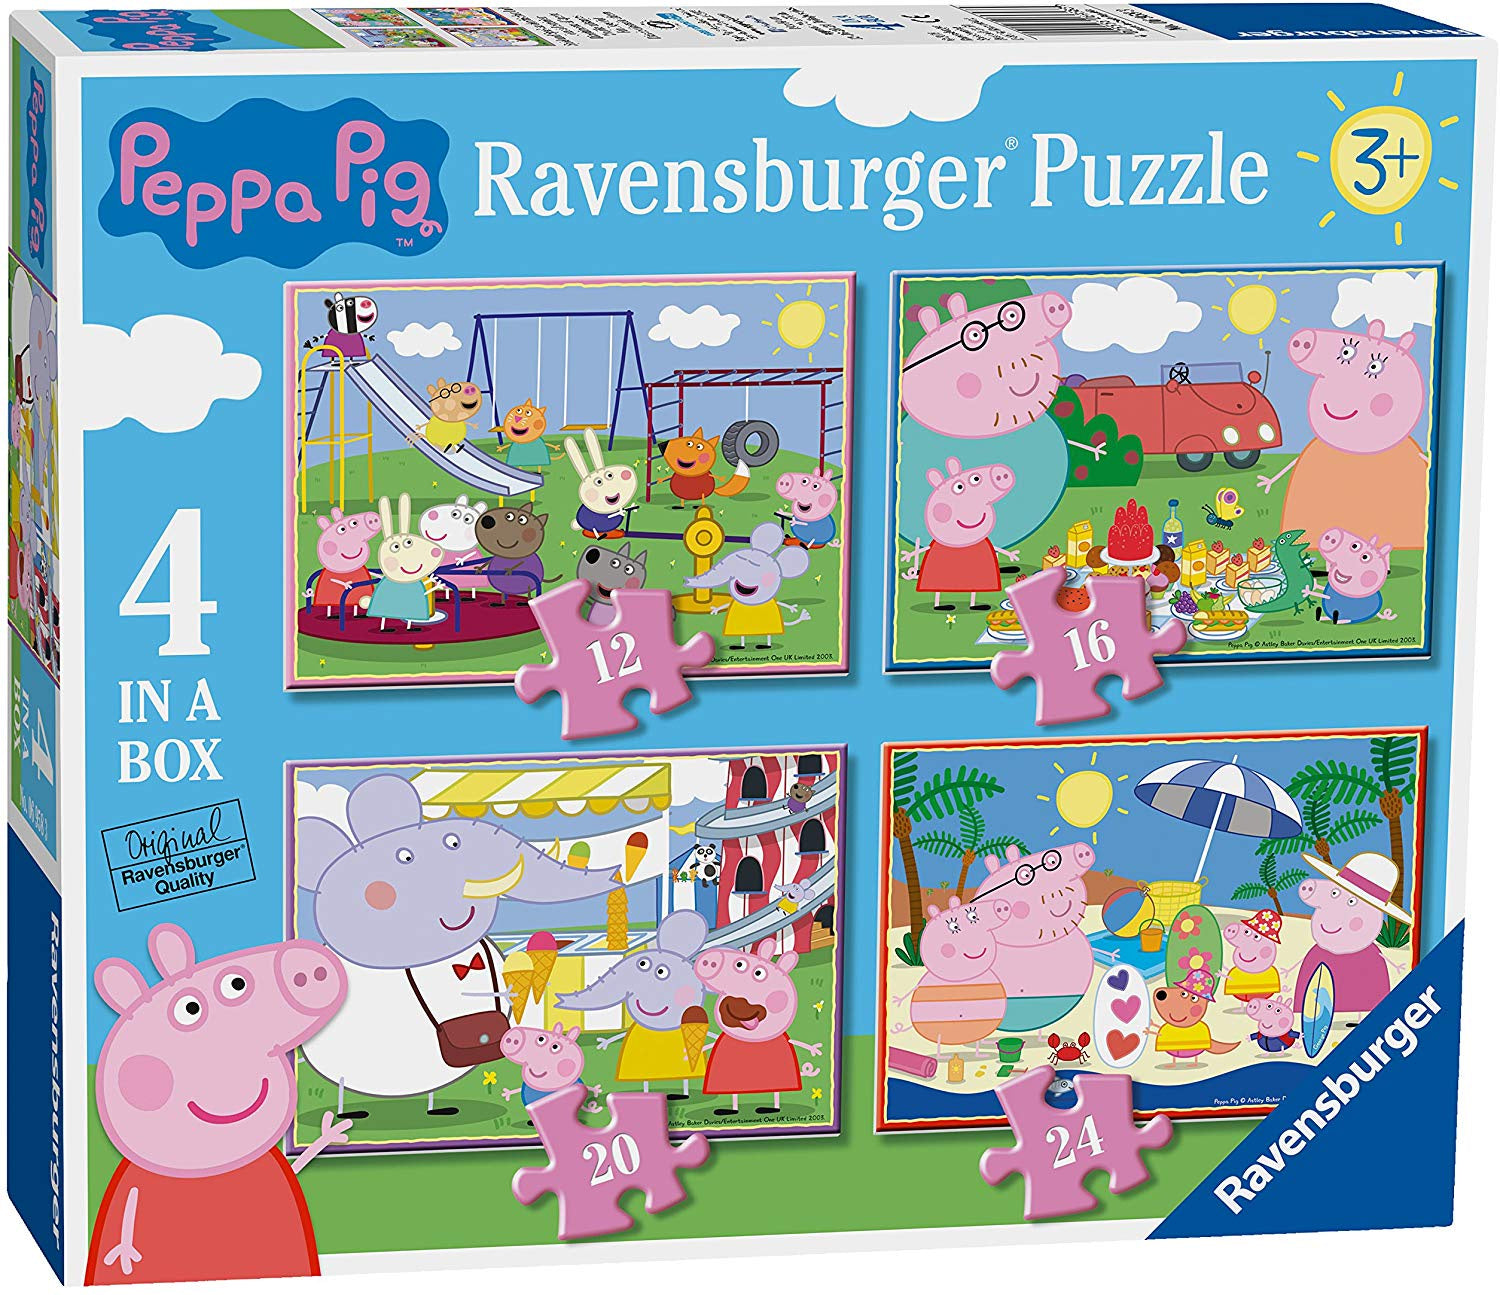 Peppas Pig 4 In A Box Jigsaw Puzzle